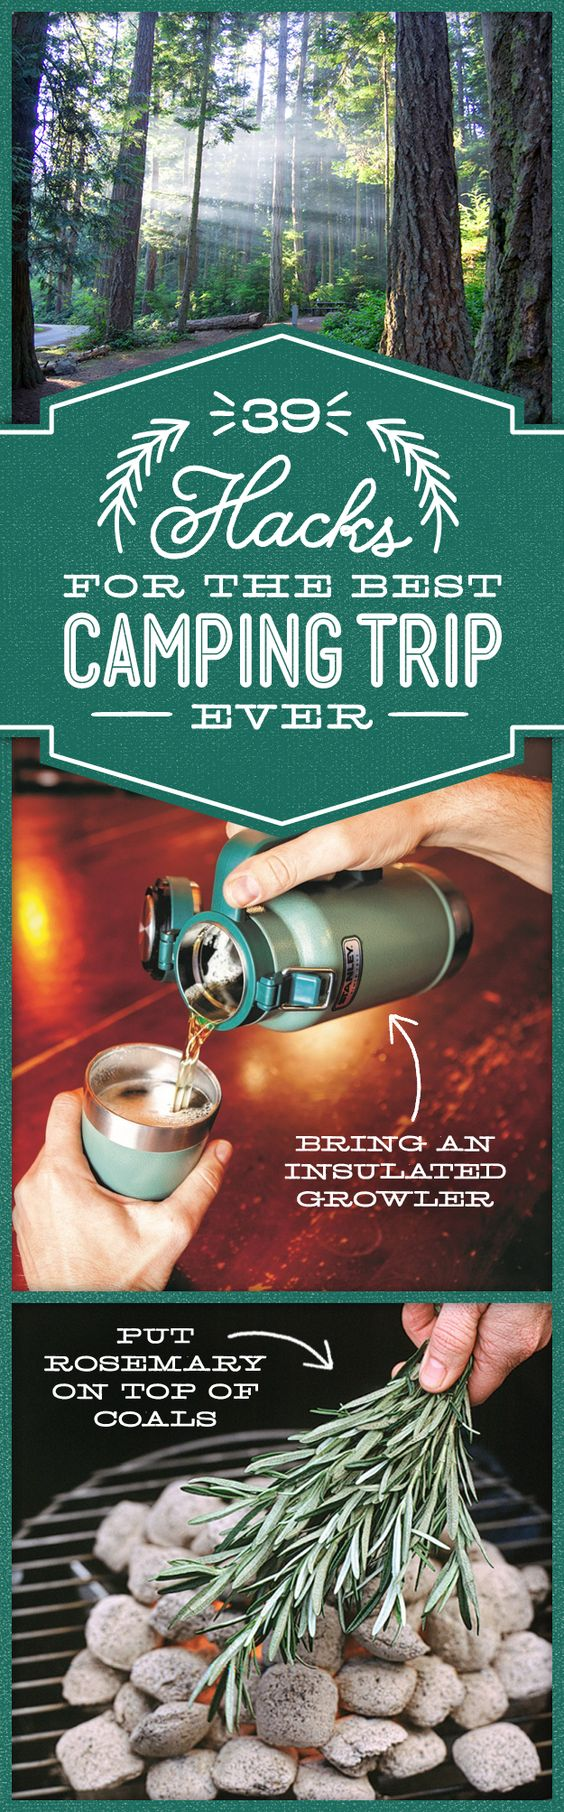 39 Hacks For The Best Camping Trip Ever